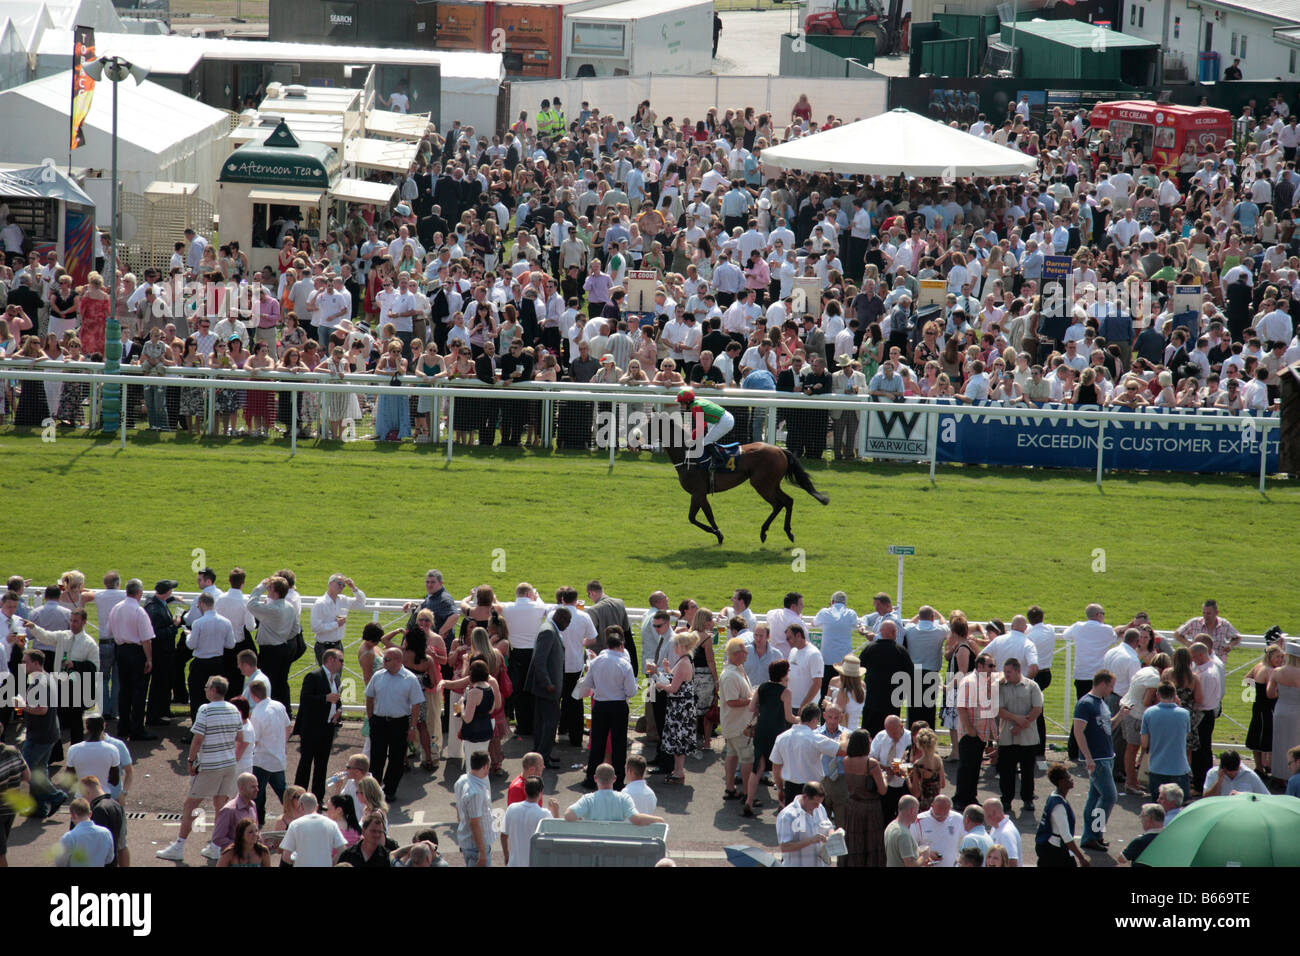 Chester Racecourse Chester 1st July Meeting Showing crowd and horses on course, Cheshire, England - Stock Image